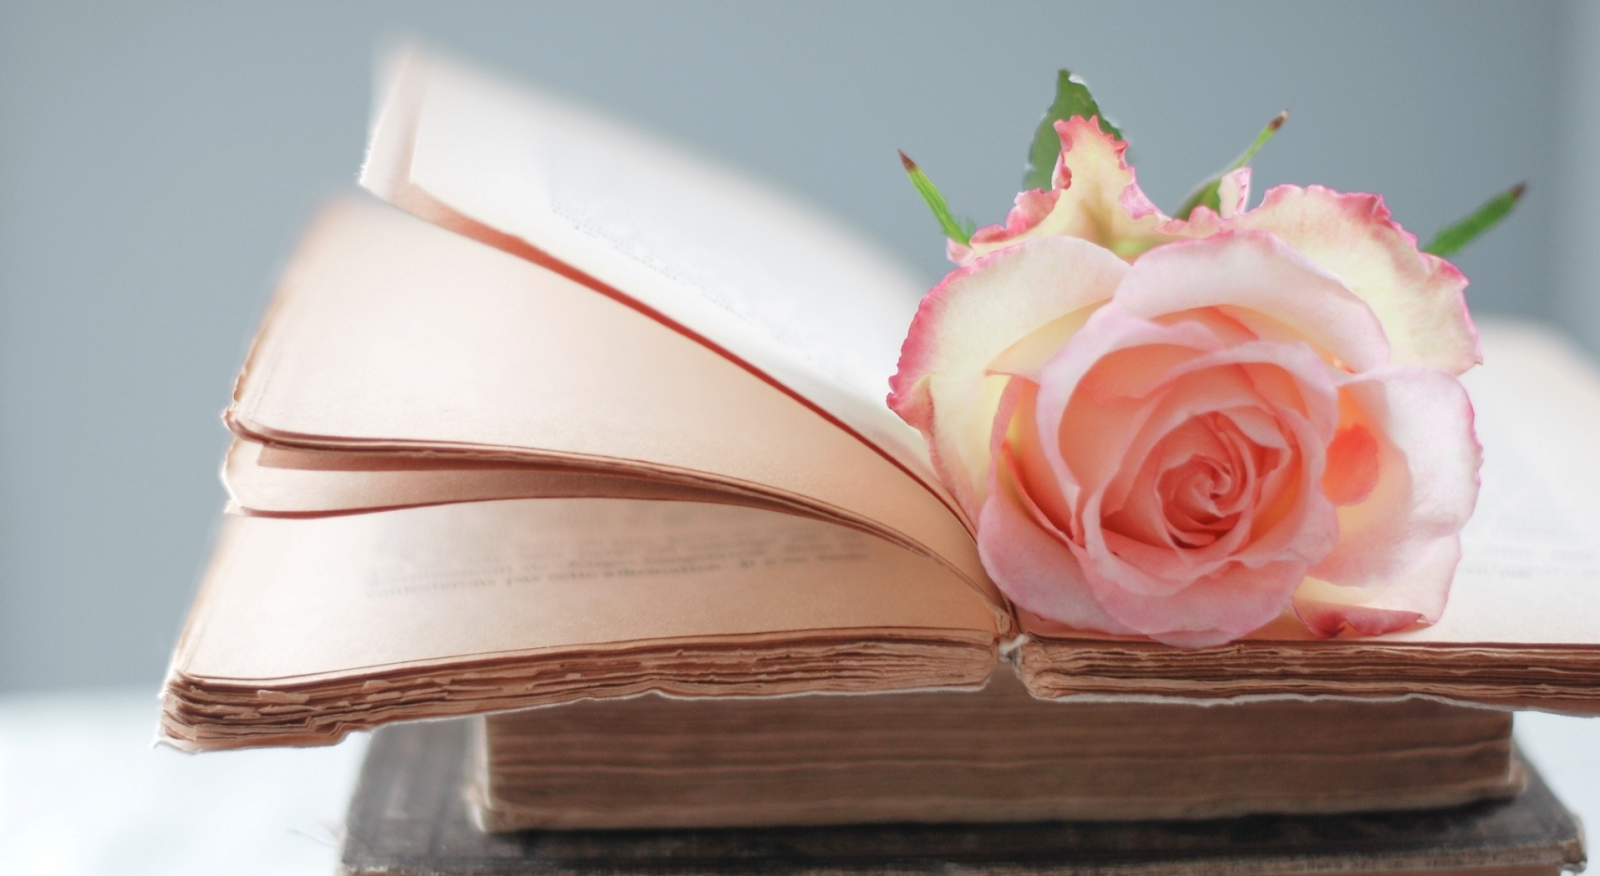 Book With Rose Wallpaper